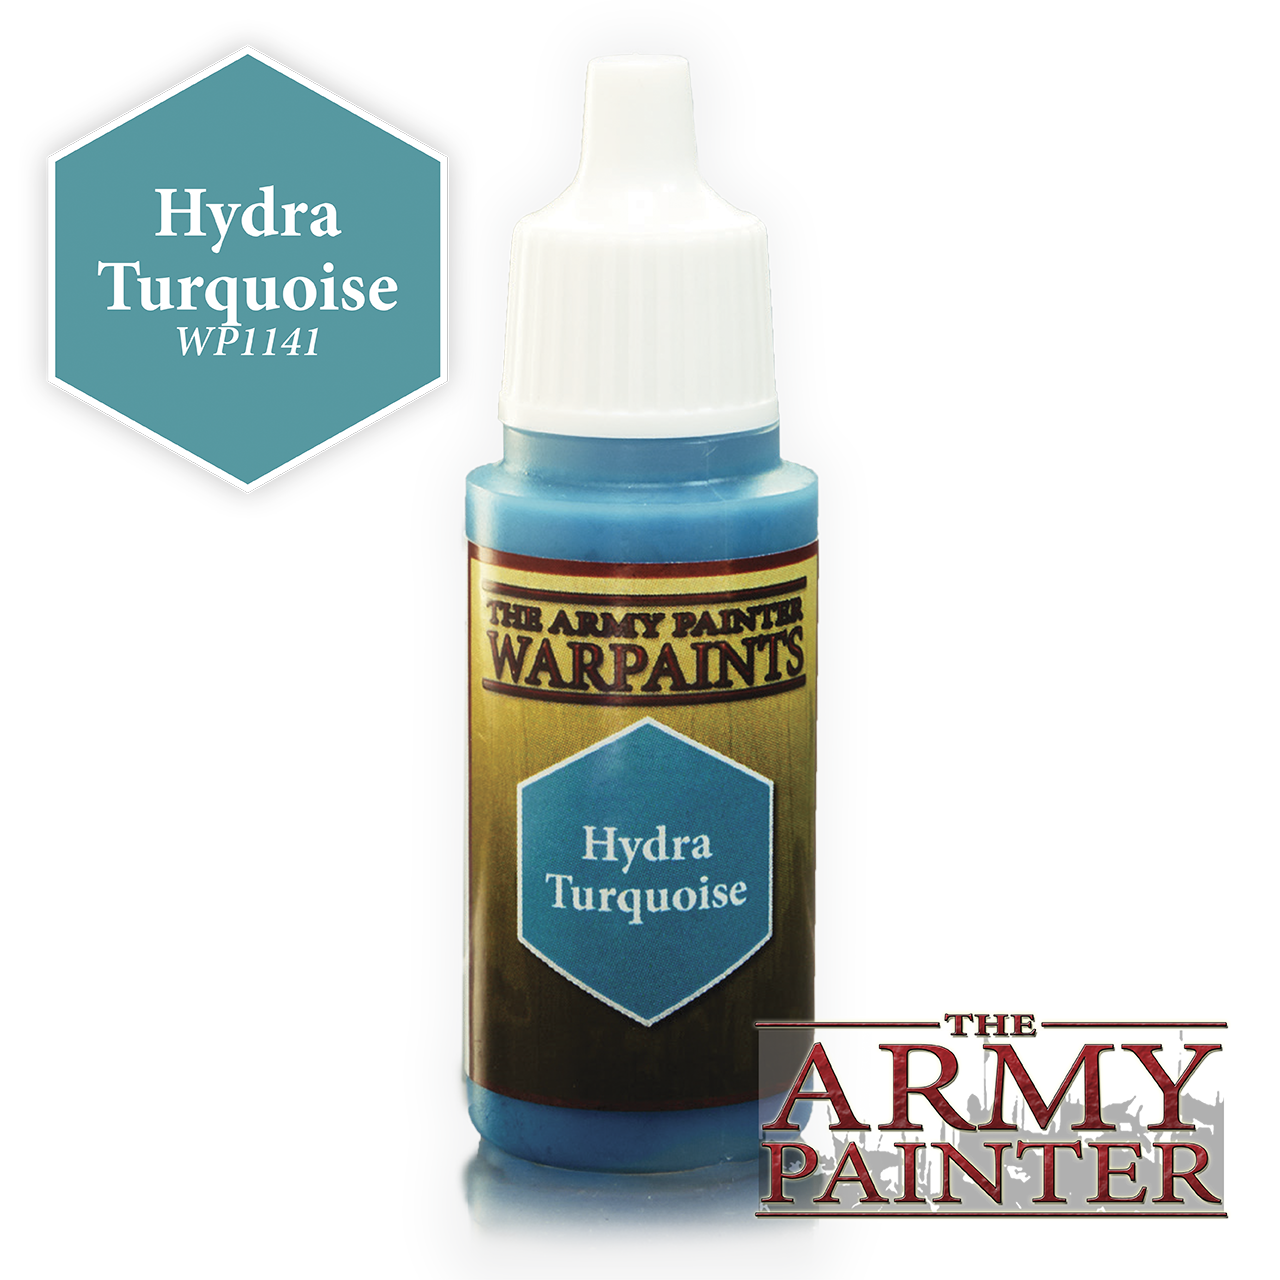 The Army Painter Warpaints: Hydra Turquoise (18ml)